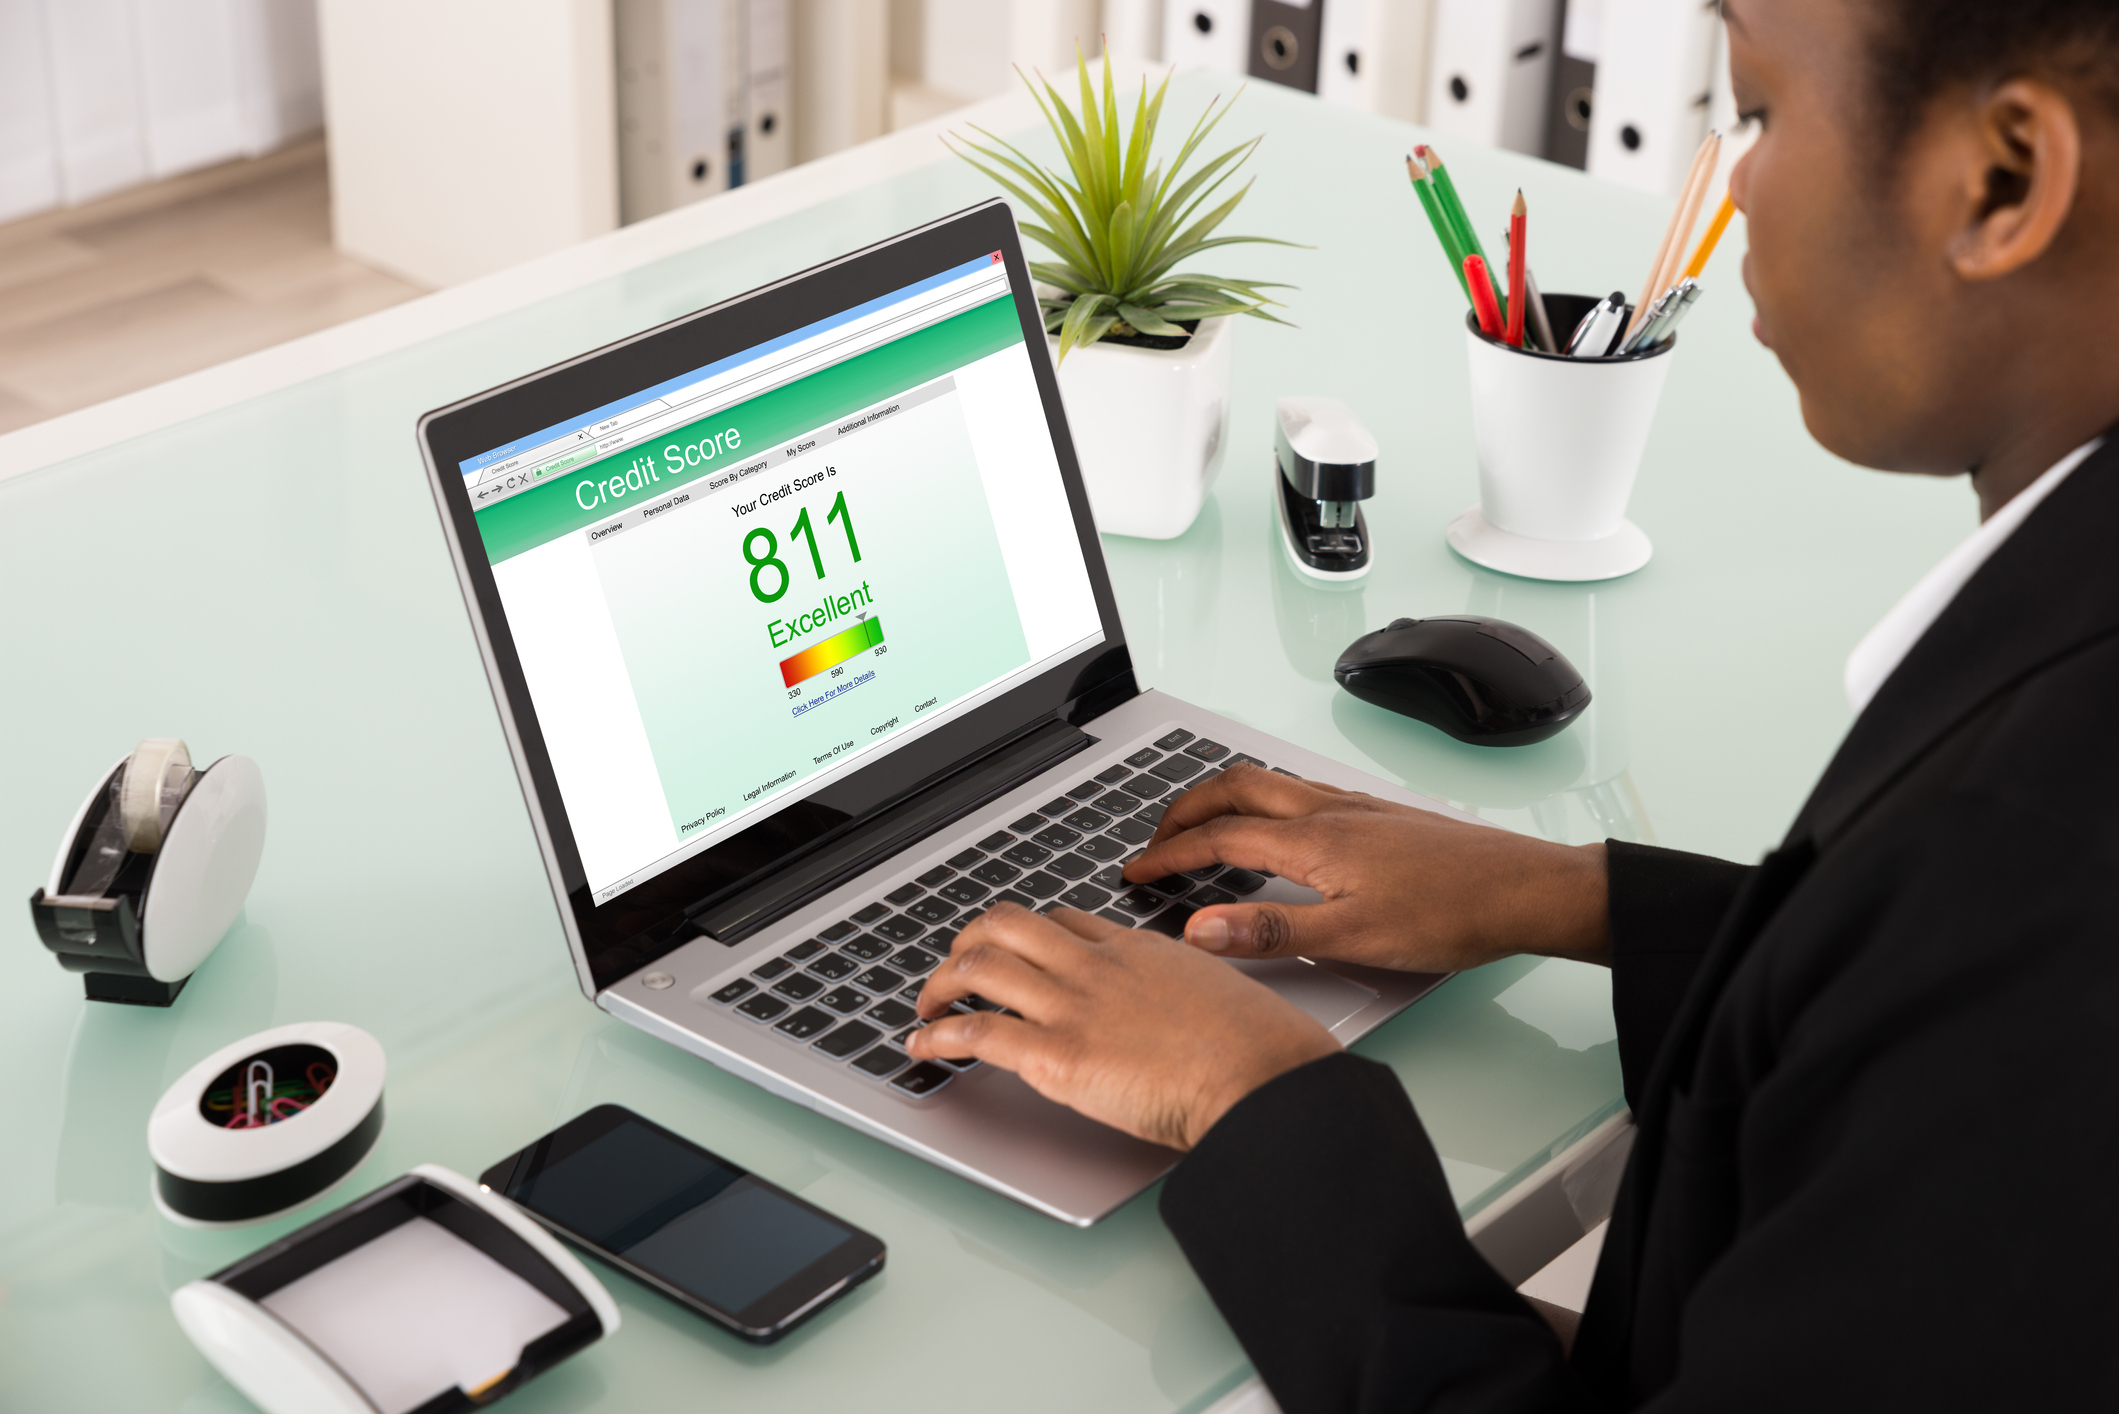 Man using laptop to view his excellent credit score of 811.